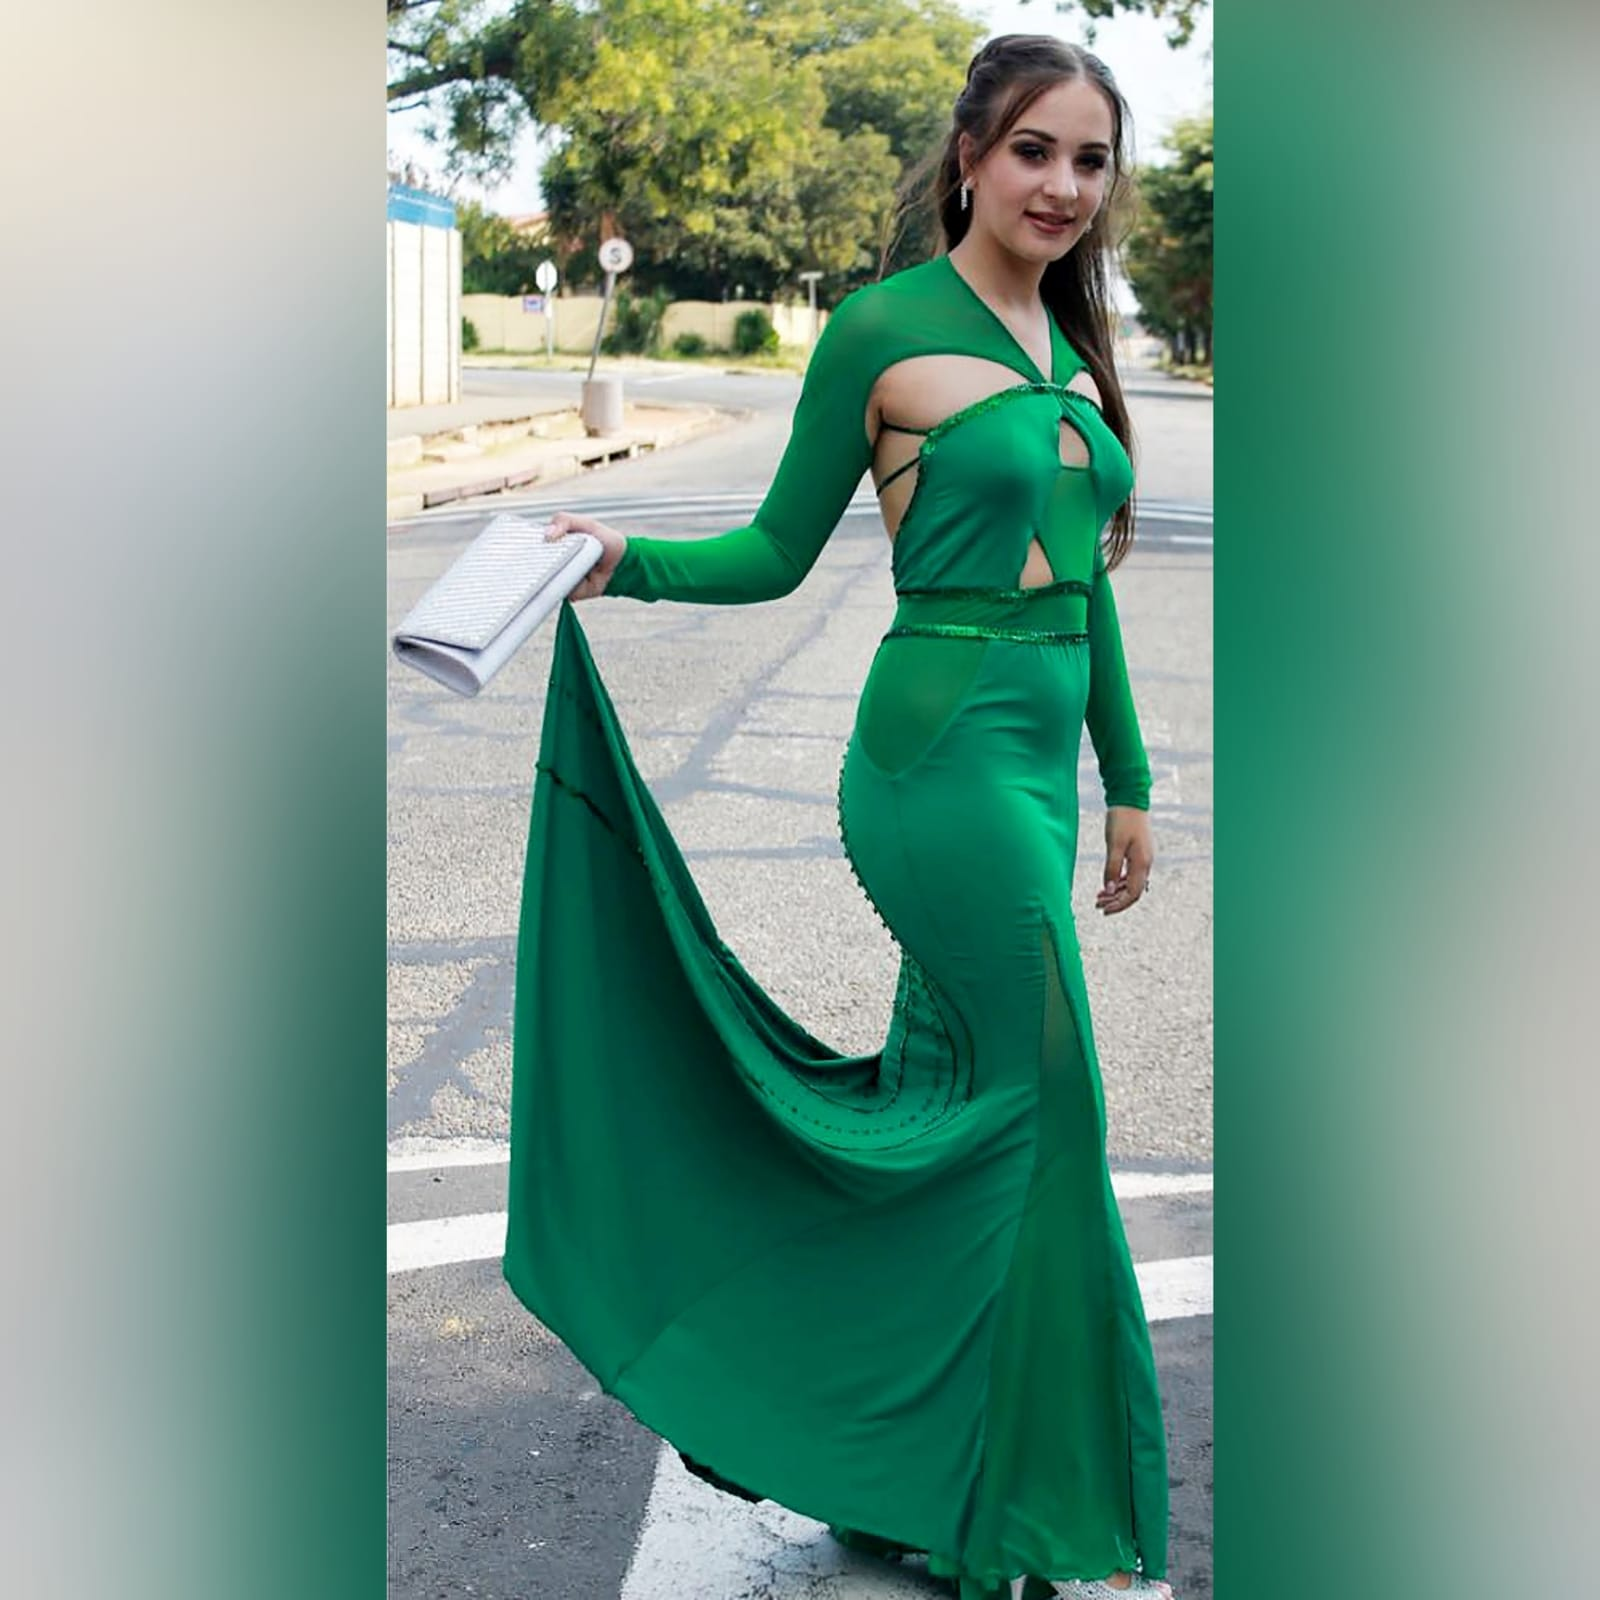 Green soft mermaid sexy unique evening dress 1 green soft mermaid sexy unique evening dress. Long sleeves, shoulders and leg panels in a slightly translucent fabric. A low open back detailed with sequins and beads.